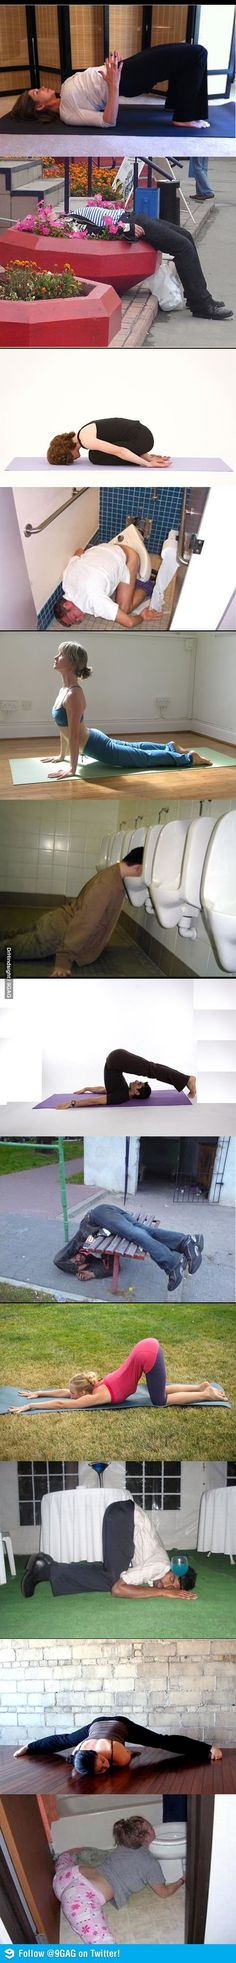 Yoga vs Booze. Oh dear, I just about died laughing!